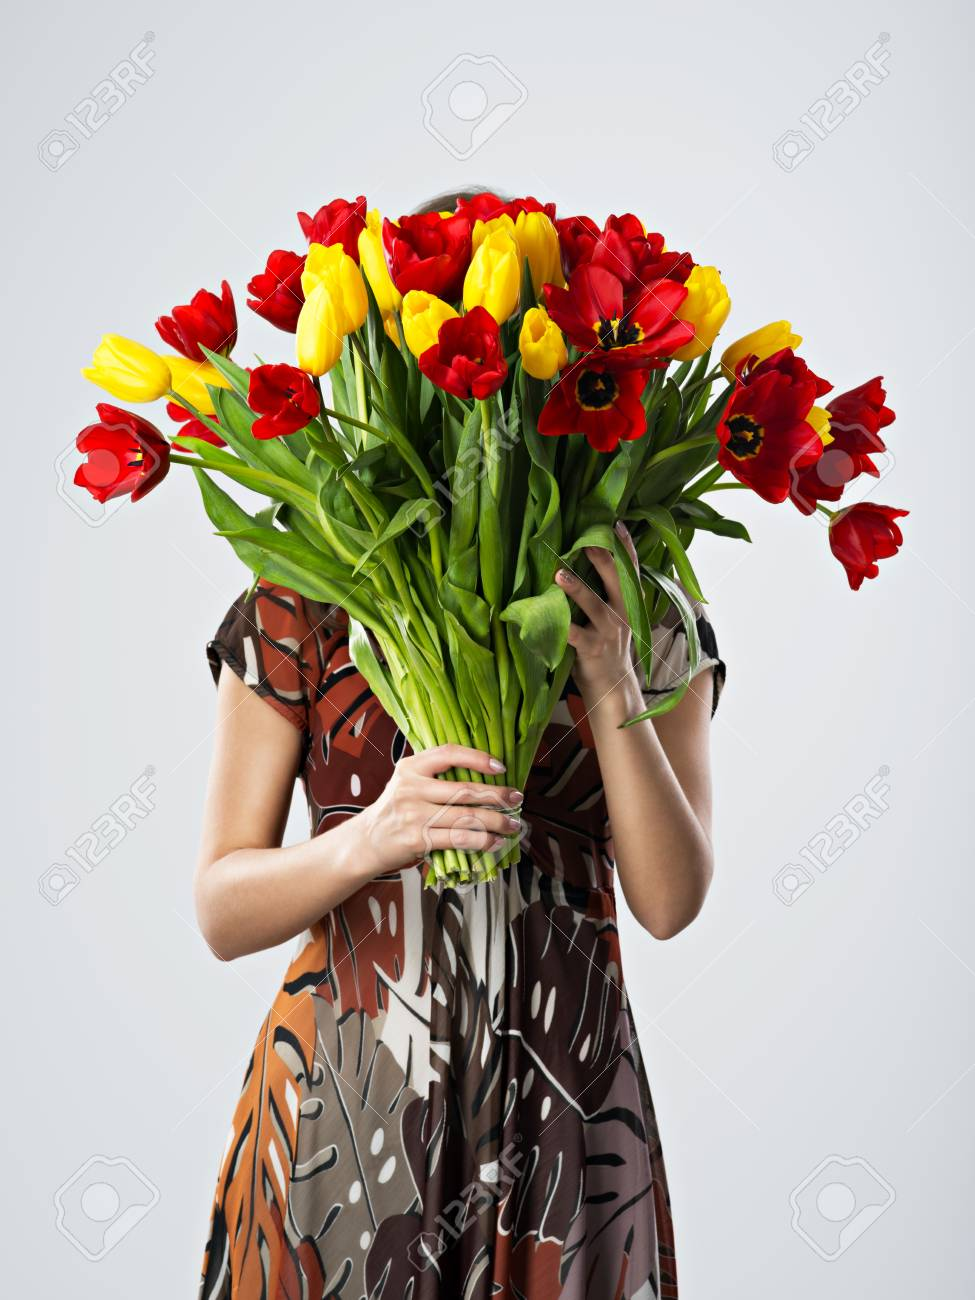 Girl covering her face with big bouquets of flowers stock photo girl covering her face with big bouquets of flowers stock photo 66159317 izmirmasajfo